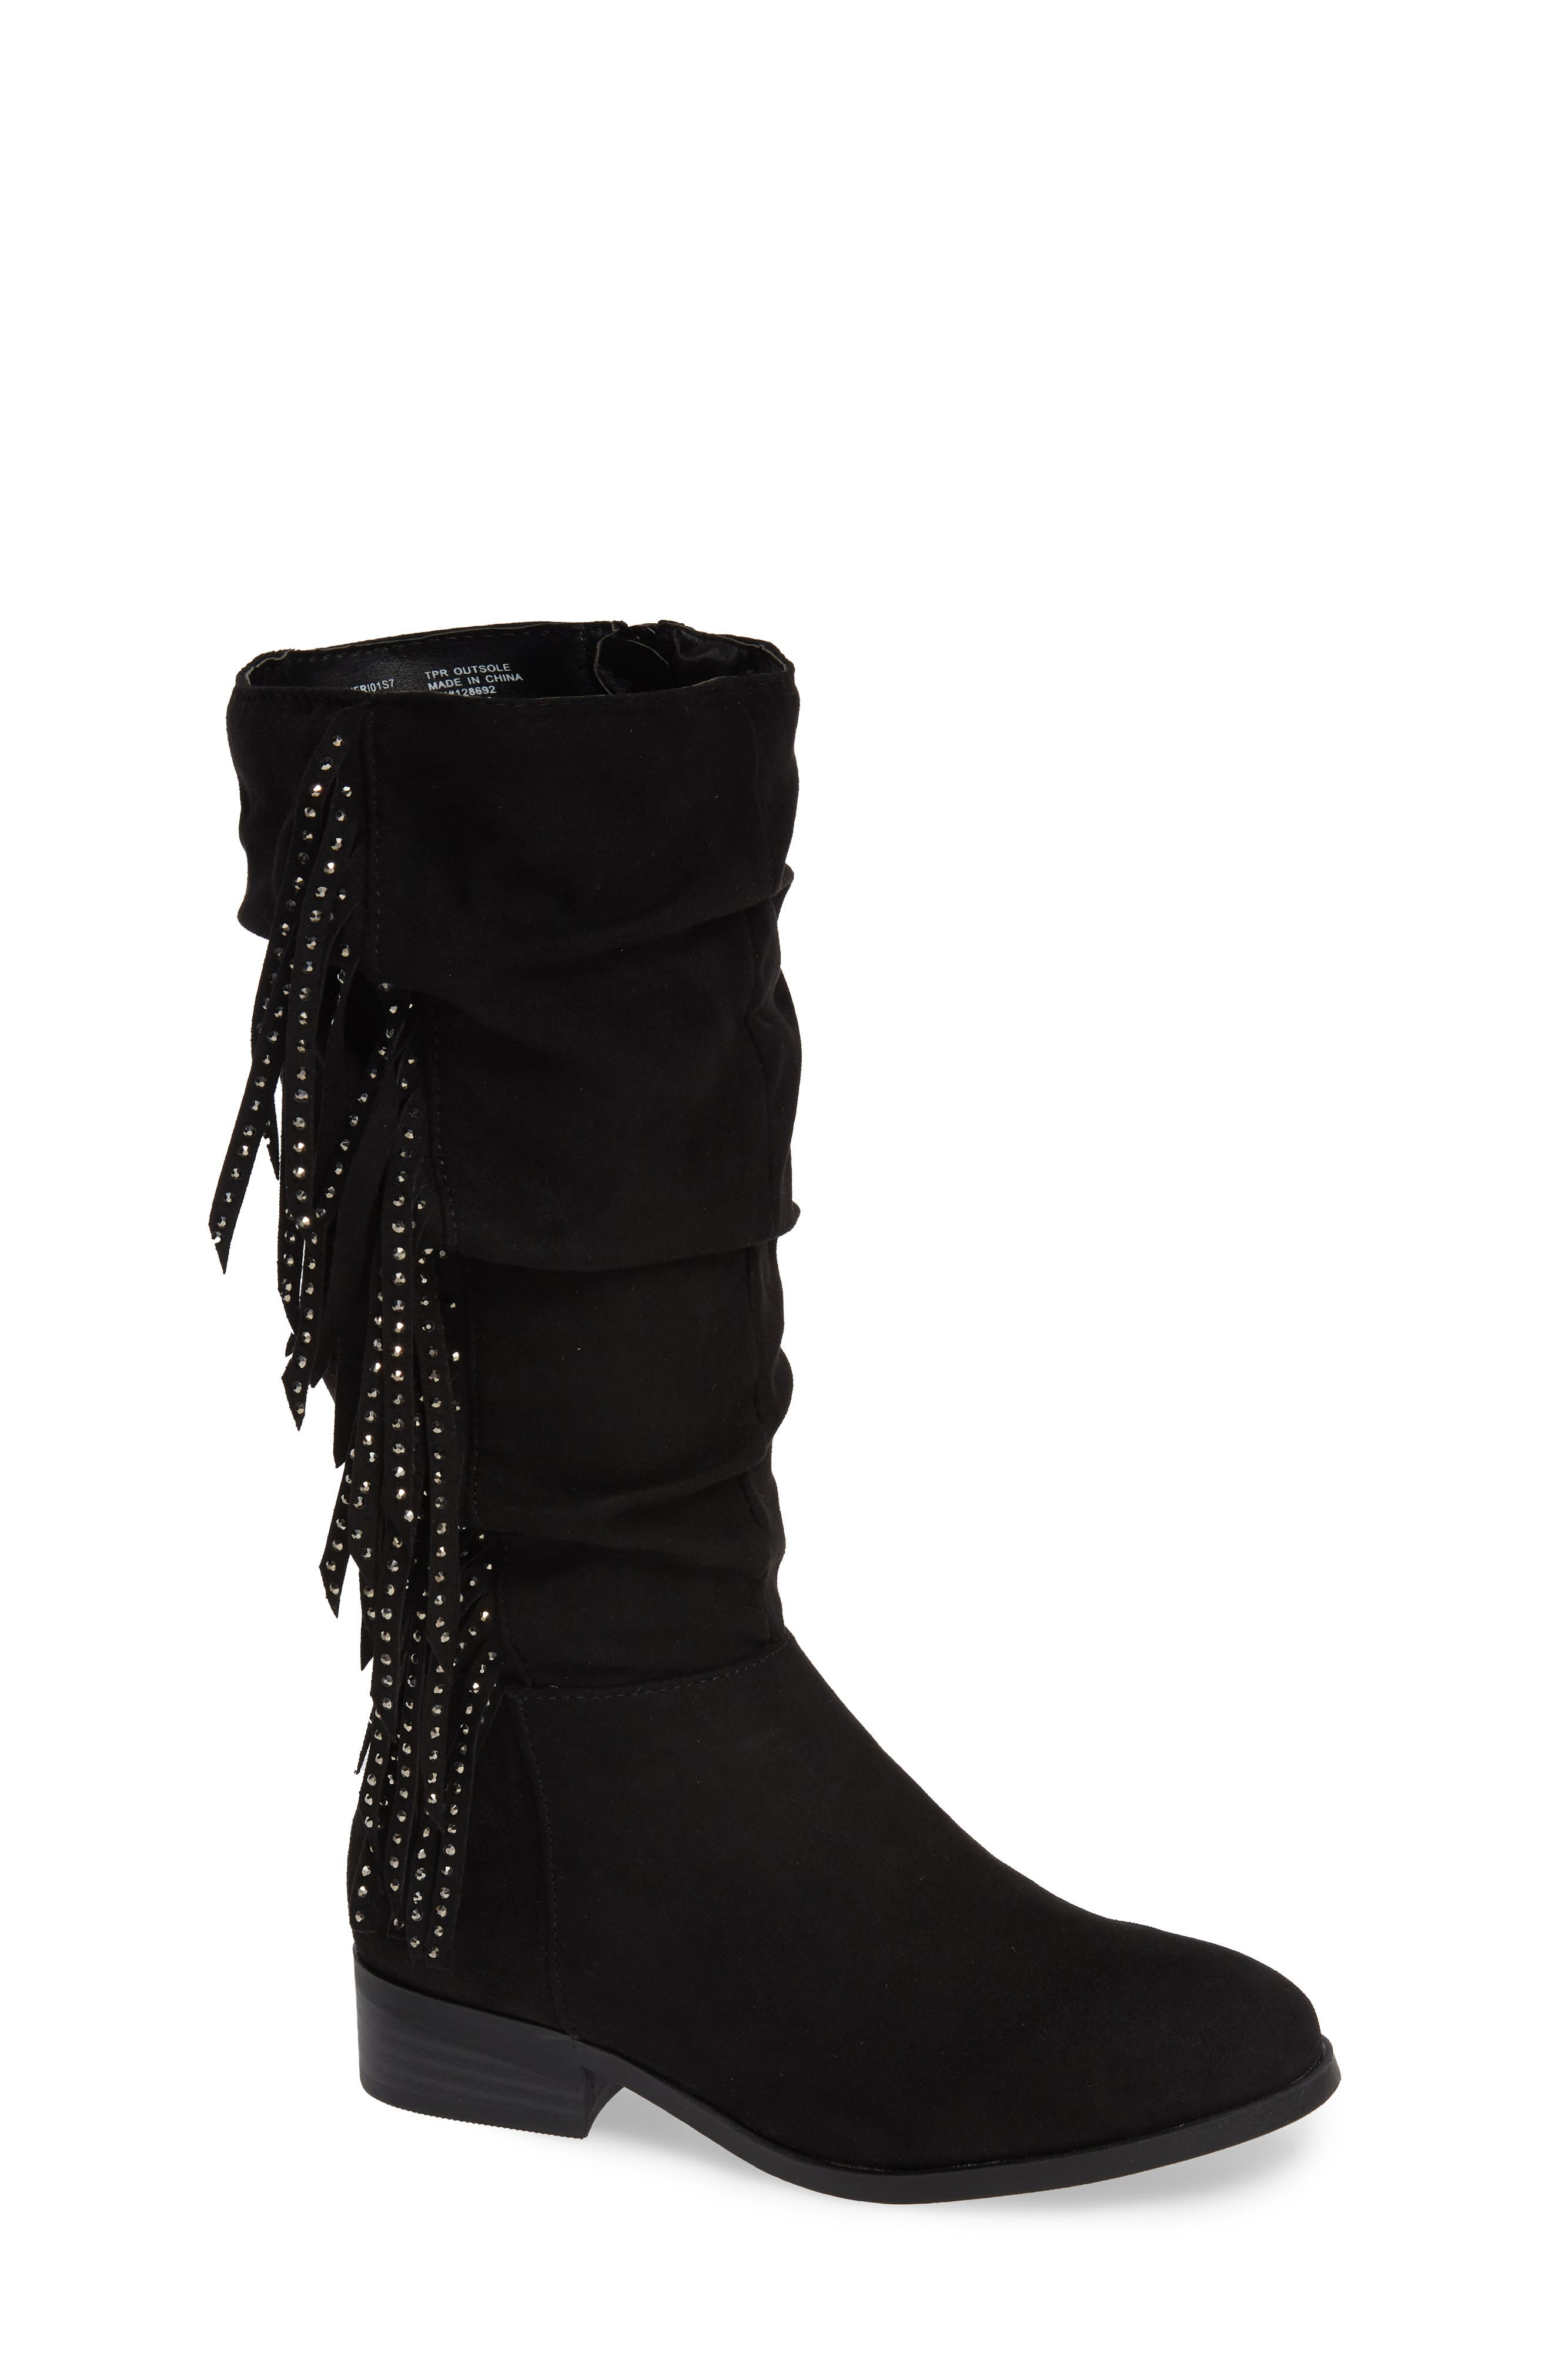 Jfringly Slouchy Fringed Boot,                         Main,                         color, BLACK MICRO